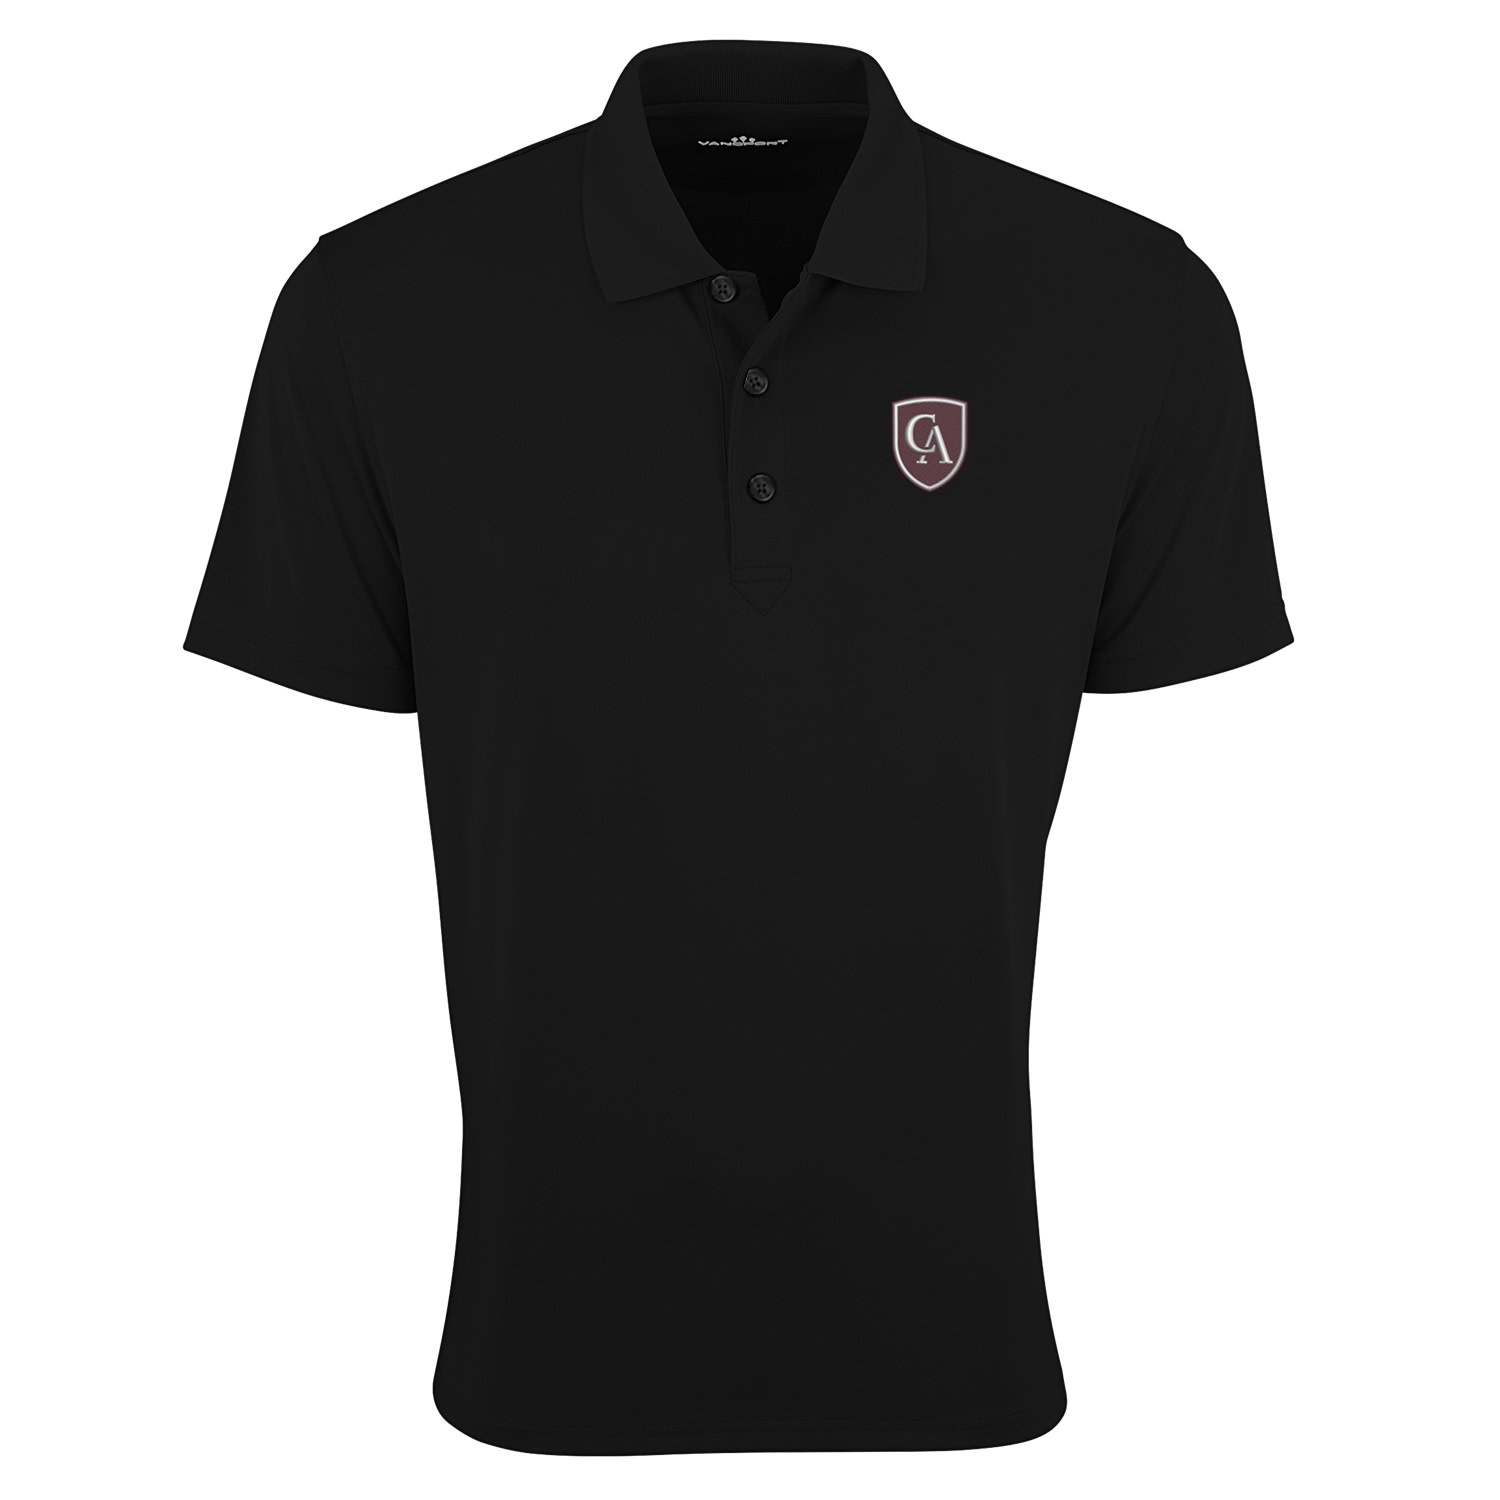 Vantage Vansport Men's V-Tech Performance Polo with Shiled